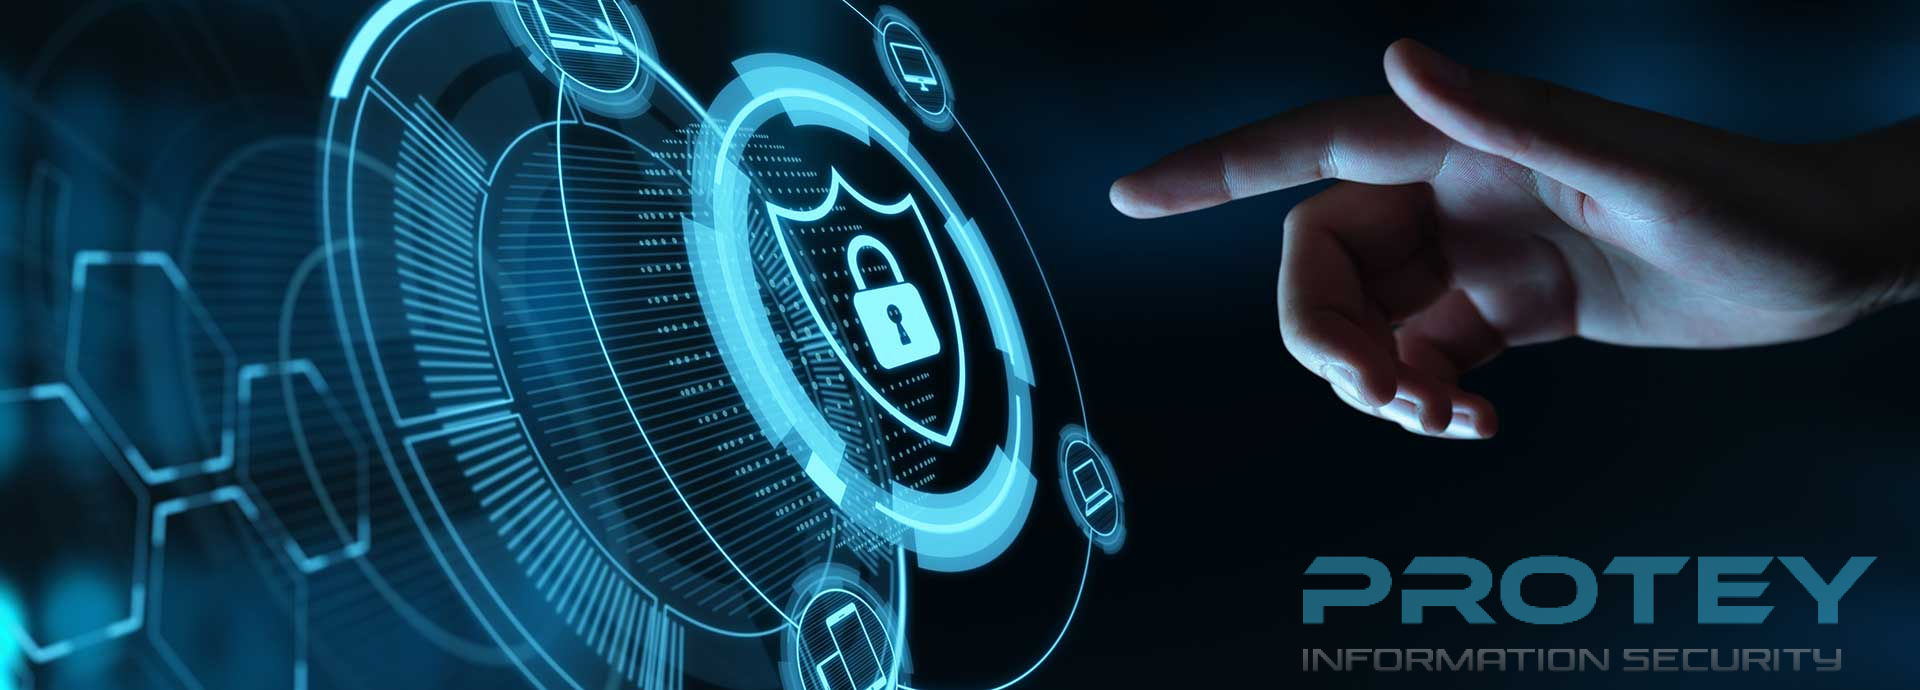 cybersecurity-looks-to-the-cloud-to-protect-data-at-sea.jpg